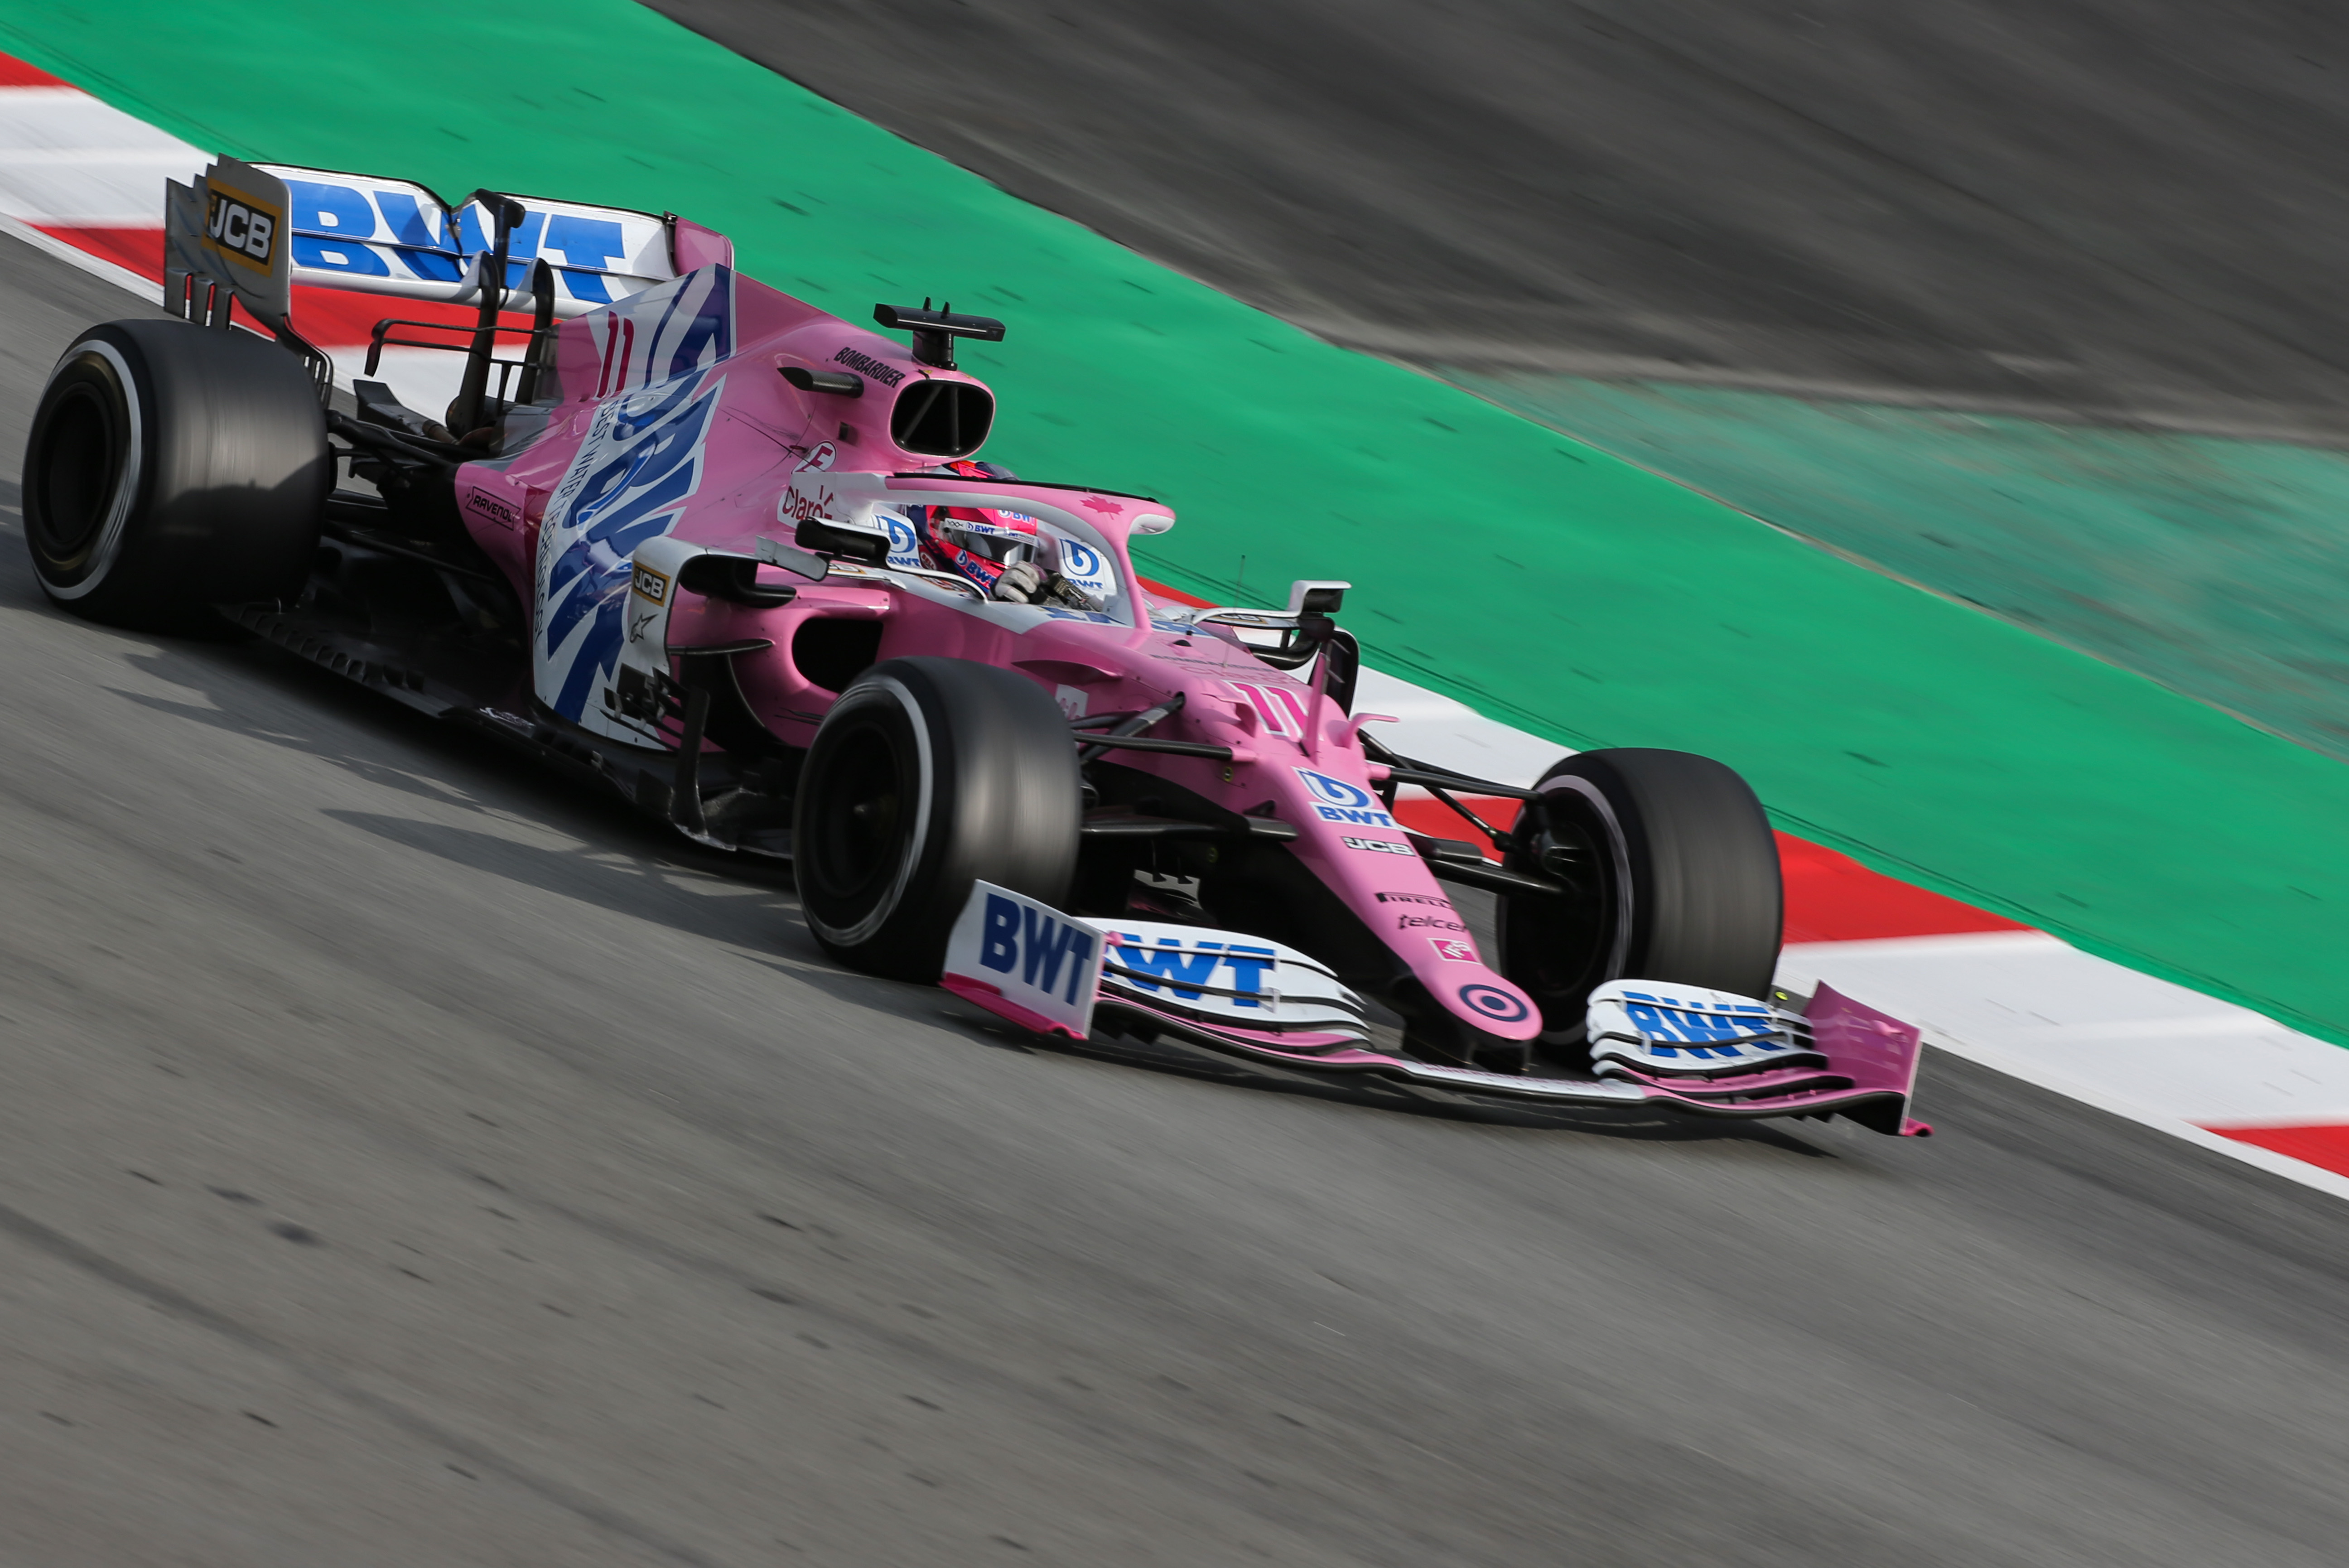 Sergio Perez Racing Point Barcelona F1 testing 2020